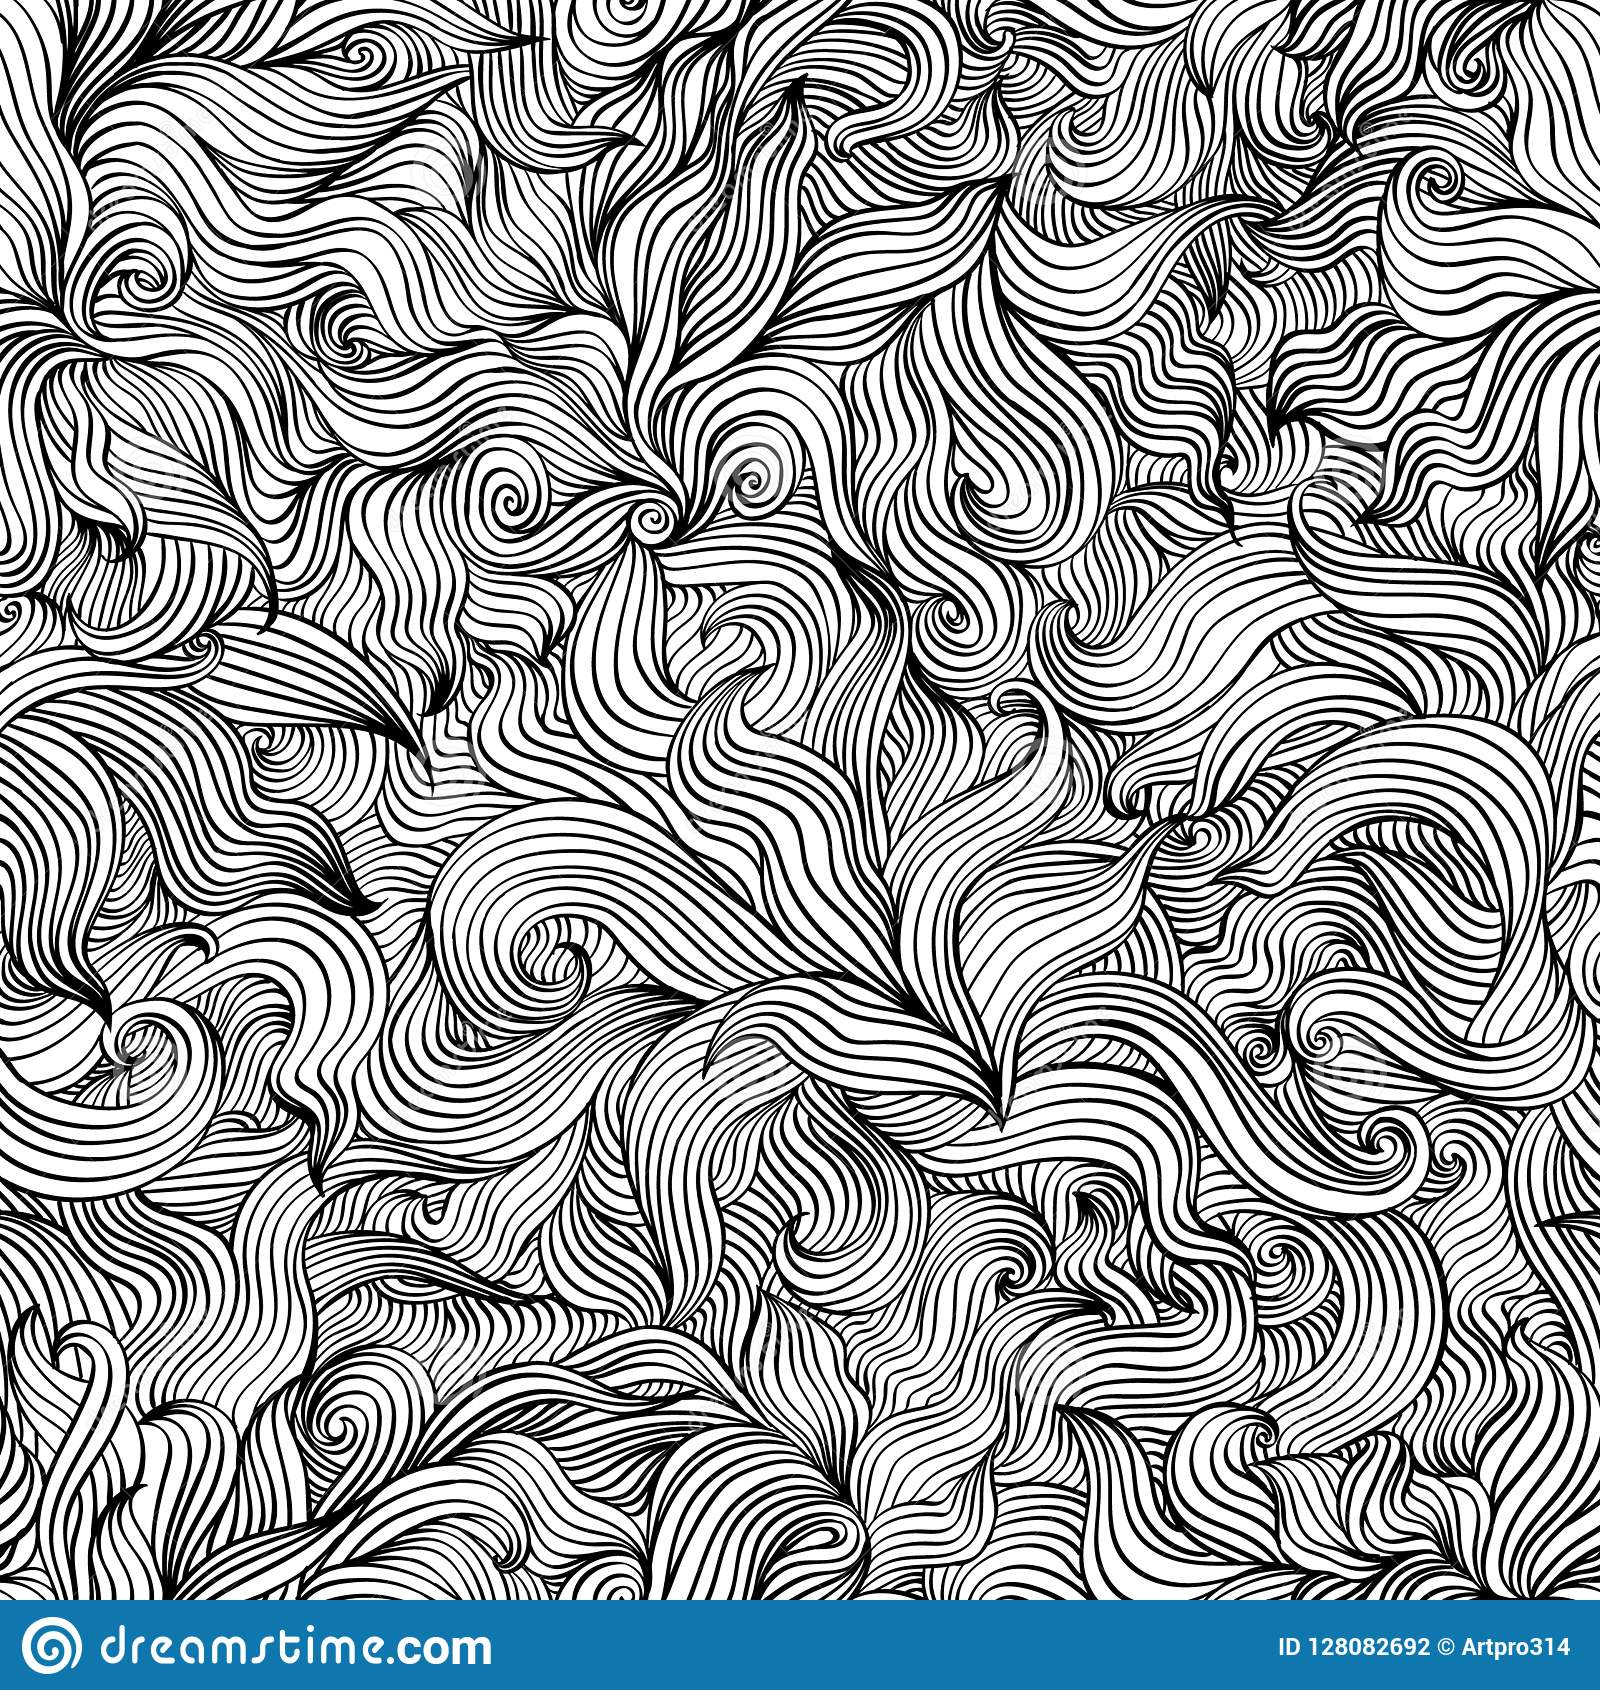 Pattern of black and white Leaves decoration illustration from wave